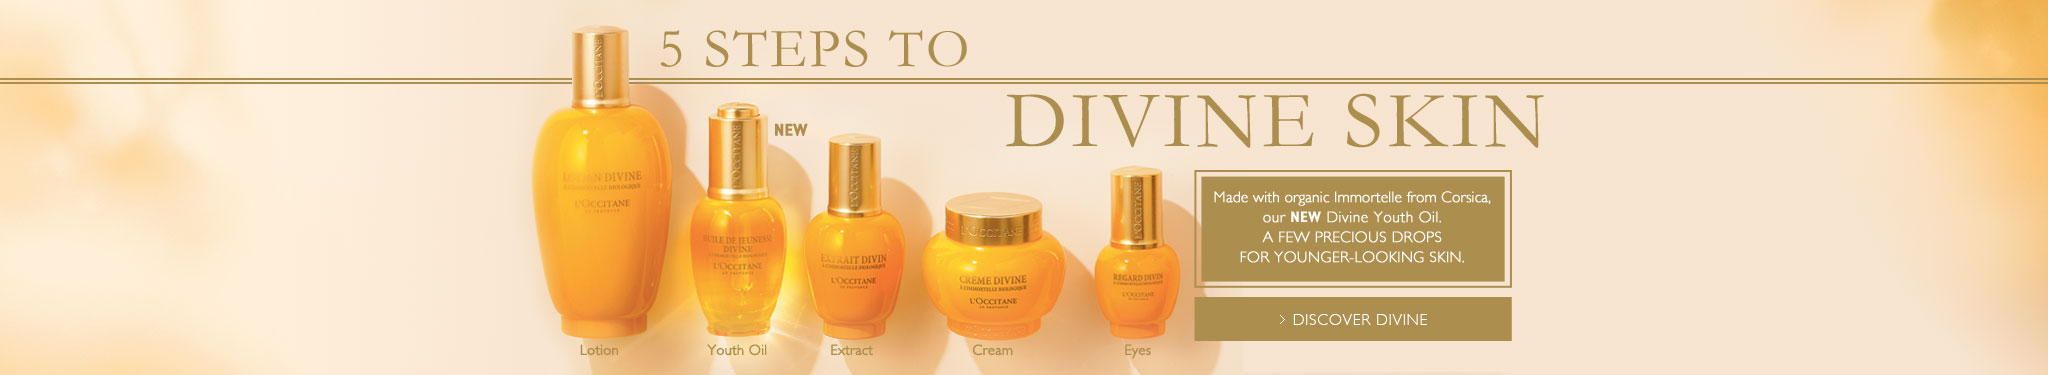 5 Steps to DIVINE SKIN. Made with organic Immortelle from Corsica, our NEW Divine Youth Oil. A FEW PRECIOUS DROPS FOR YOUNGER-LOOKING SKIN.> DISCOVER DIVINE